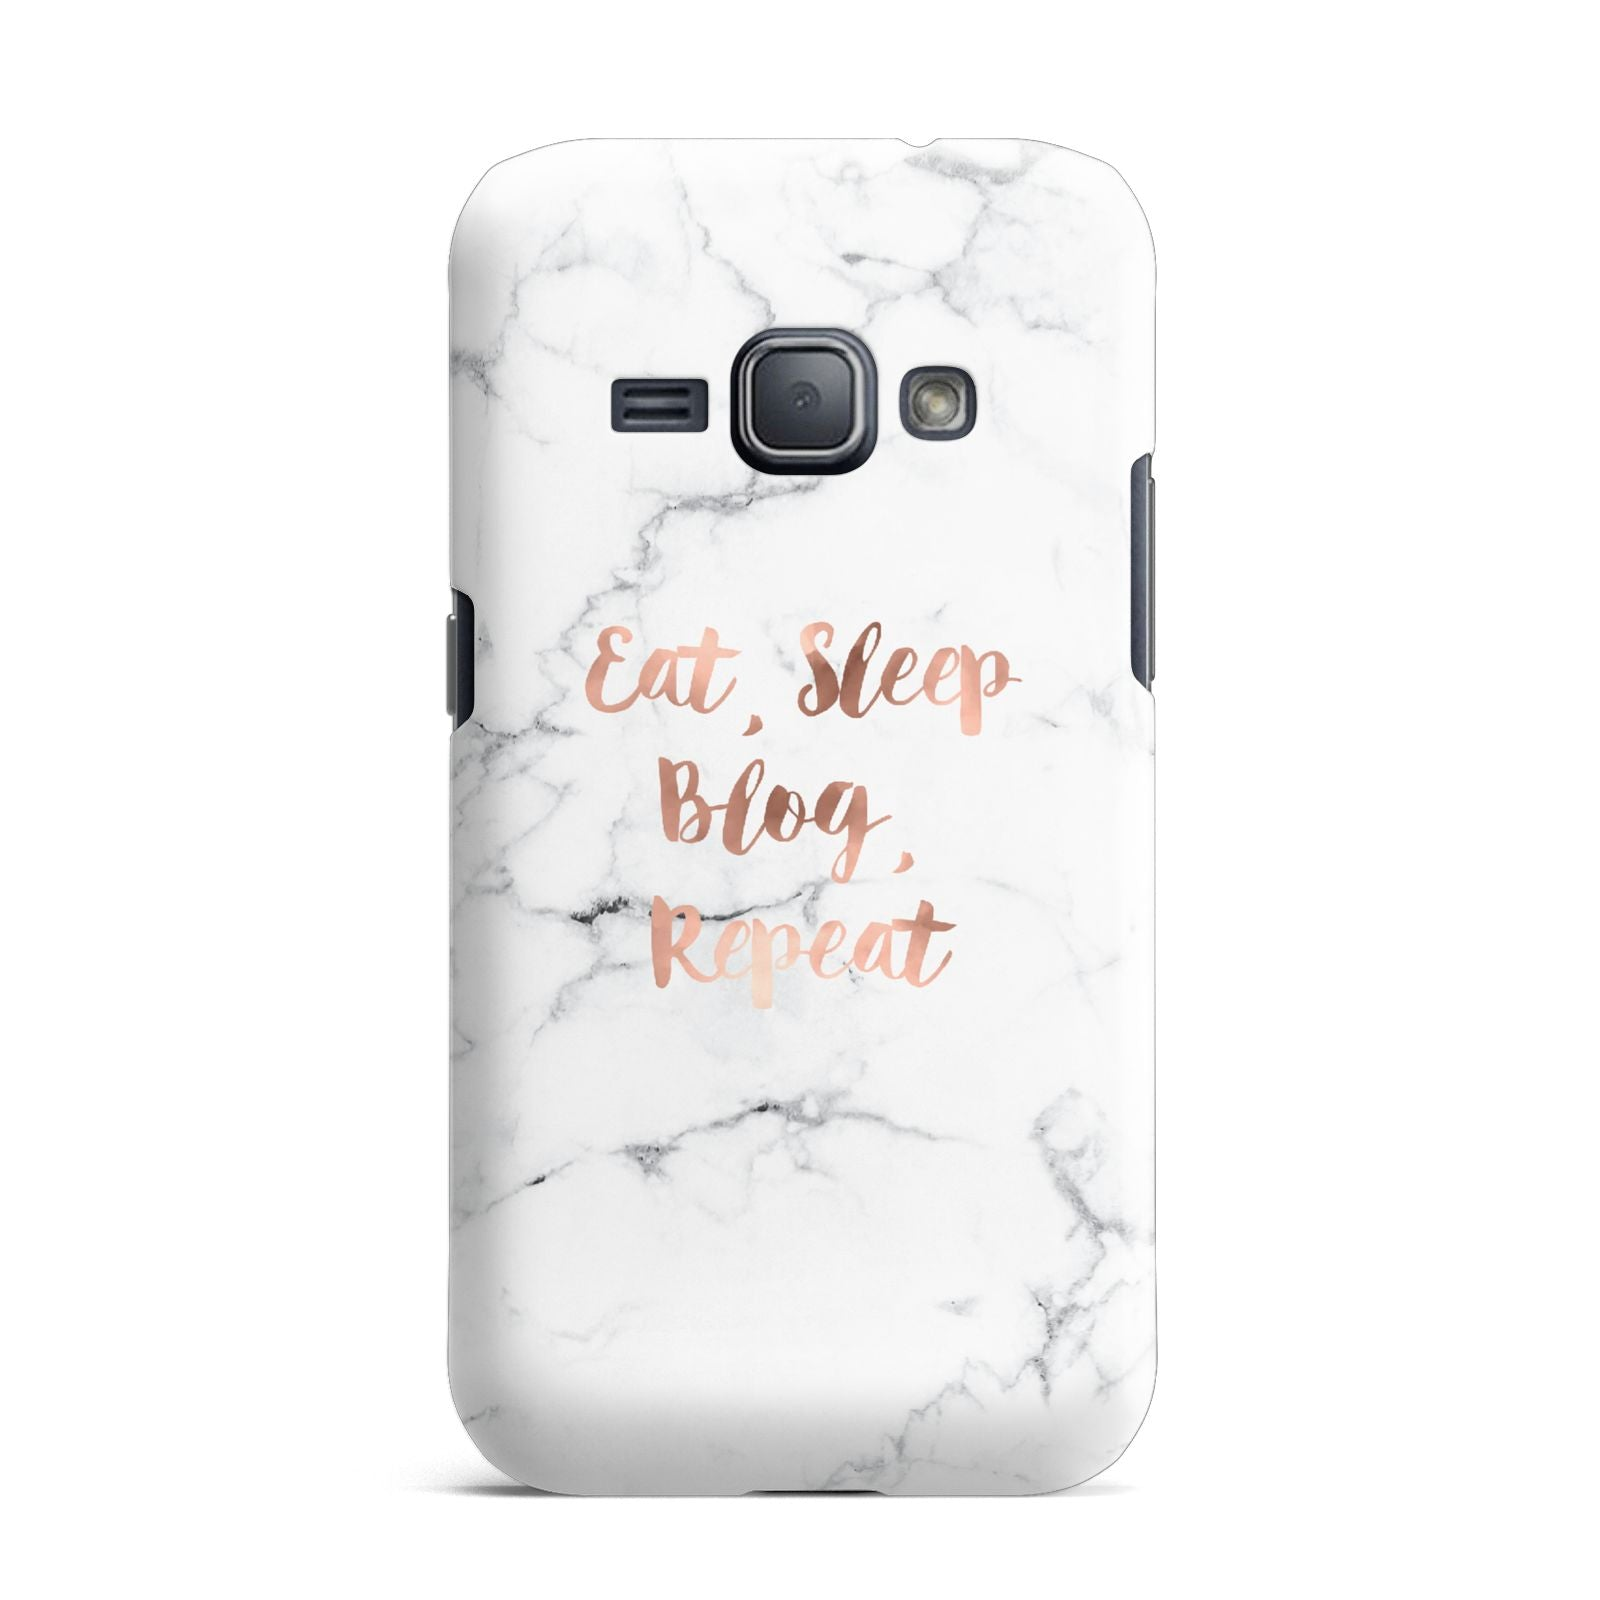 Eat Sleep Blog Repeat Marble Effect Samsung Galaxy J1 2016 Case